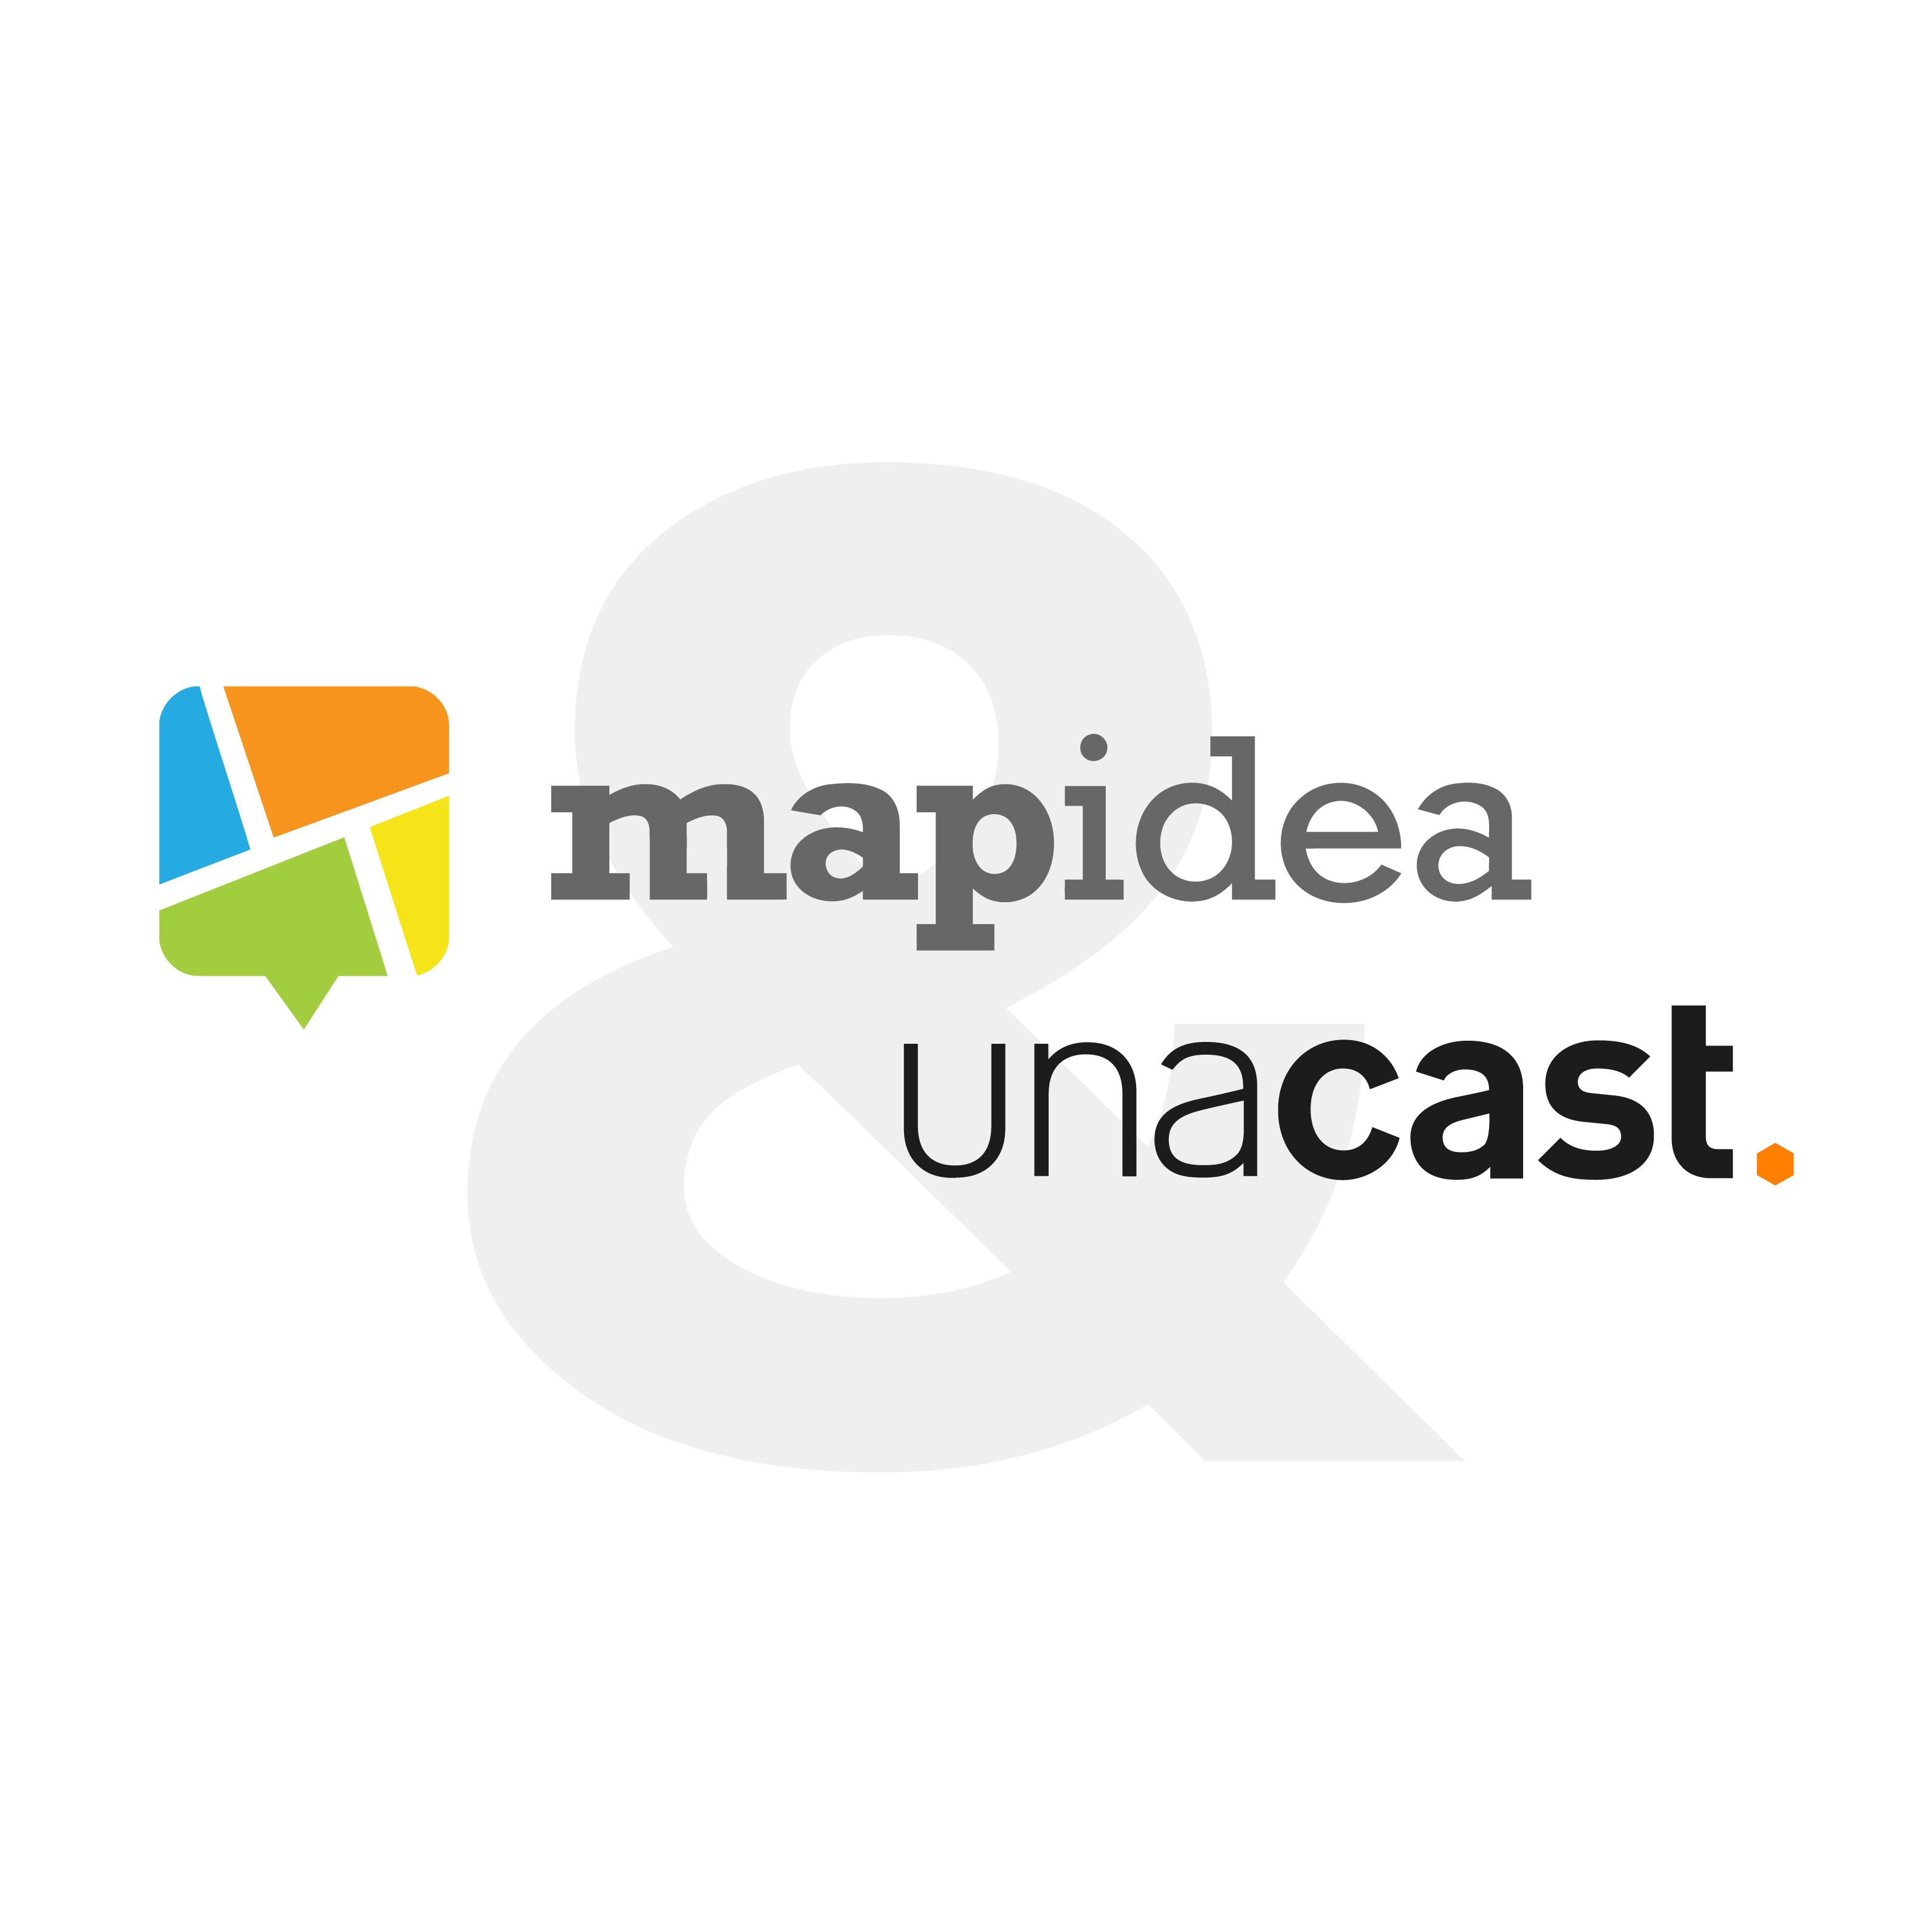 Unacast Partners with Mapidea to Deliver Geospatial Data Offerings